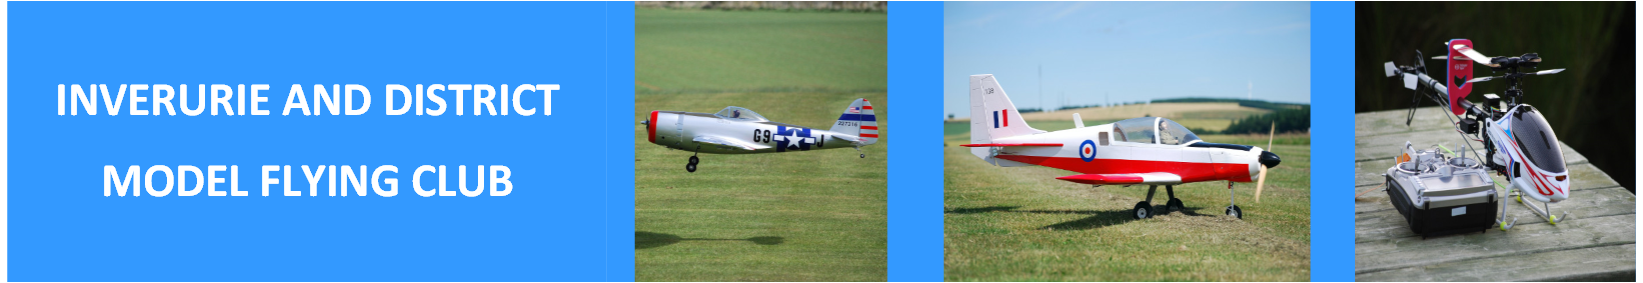 Inverurie and District Model Flying Club